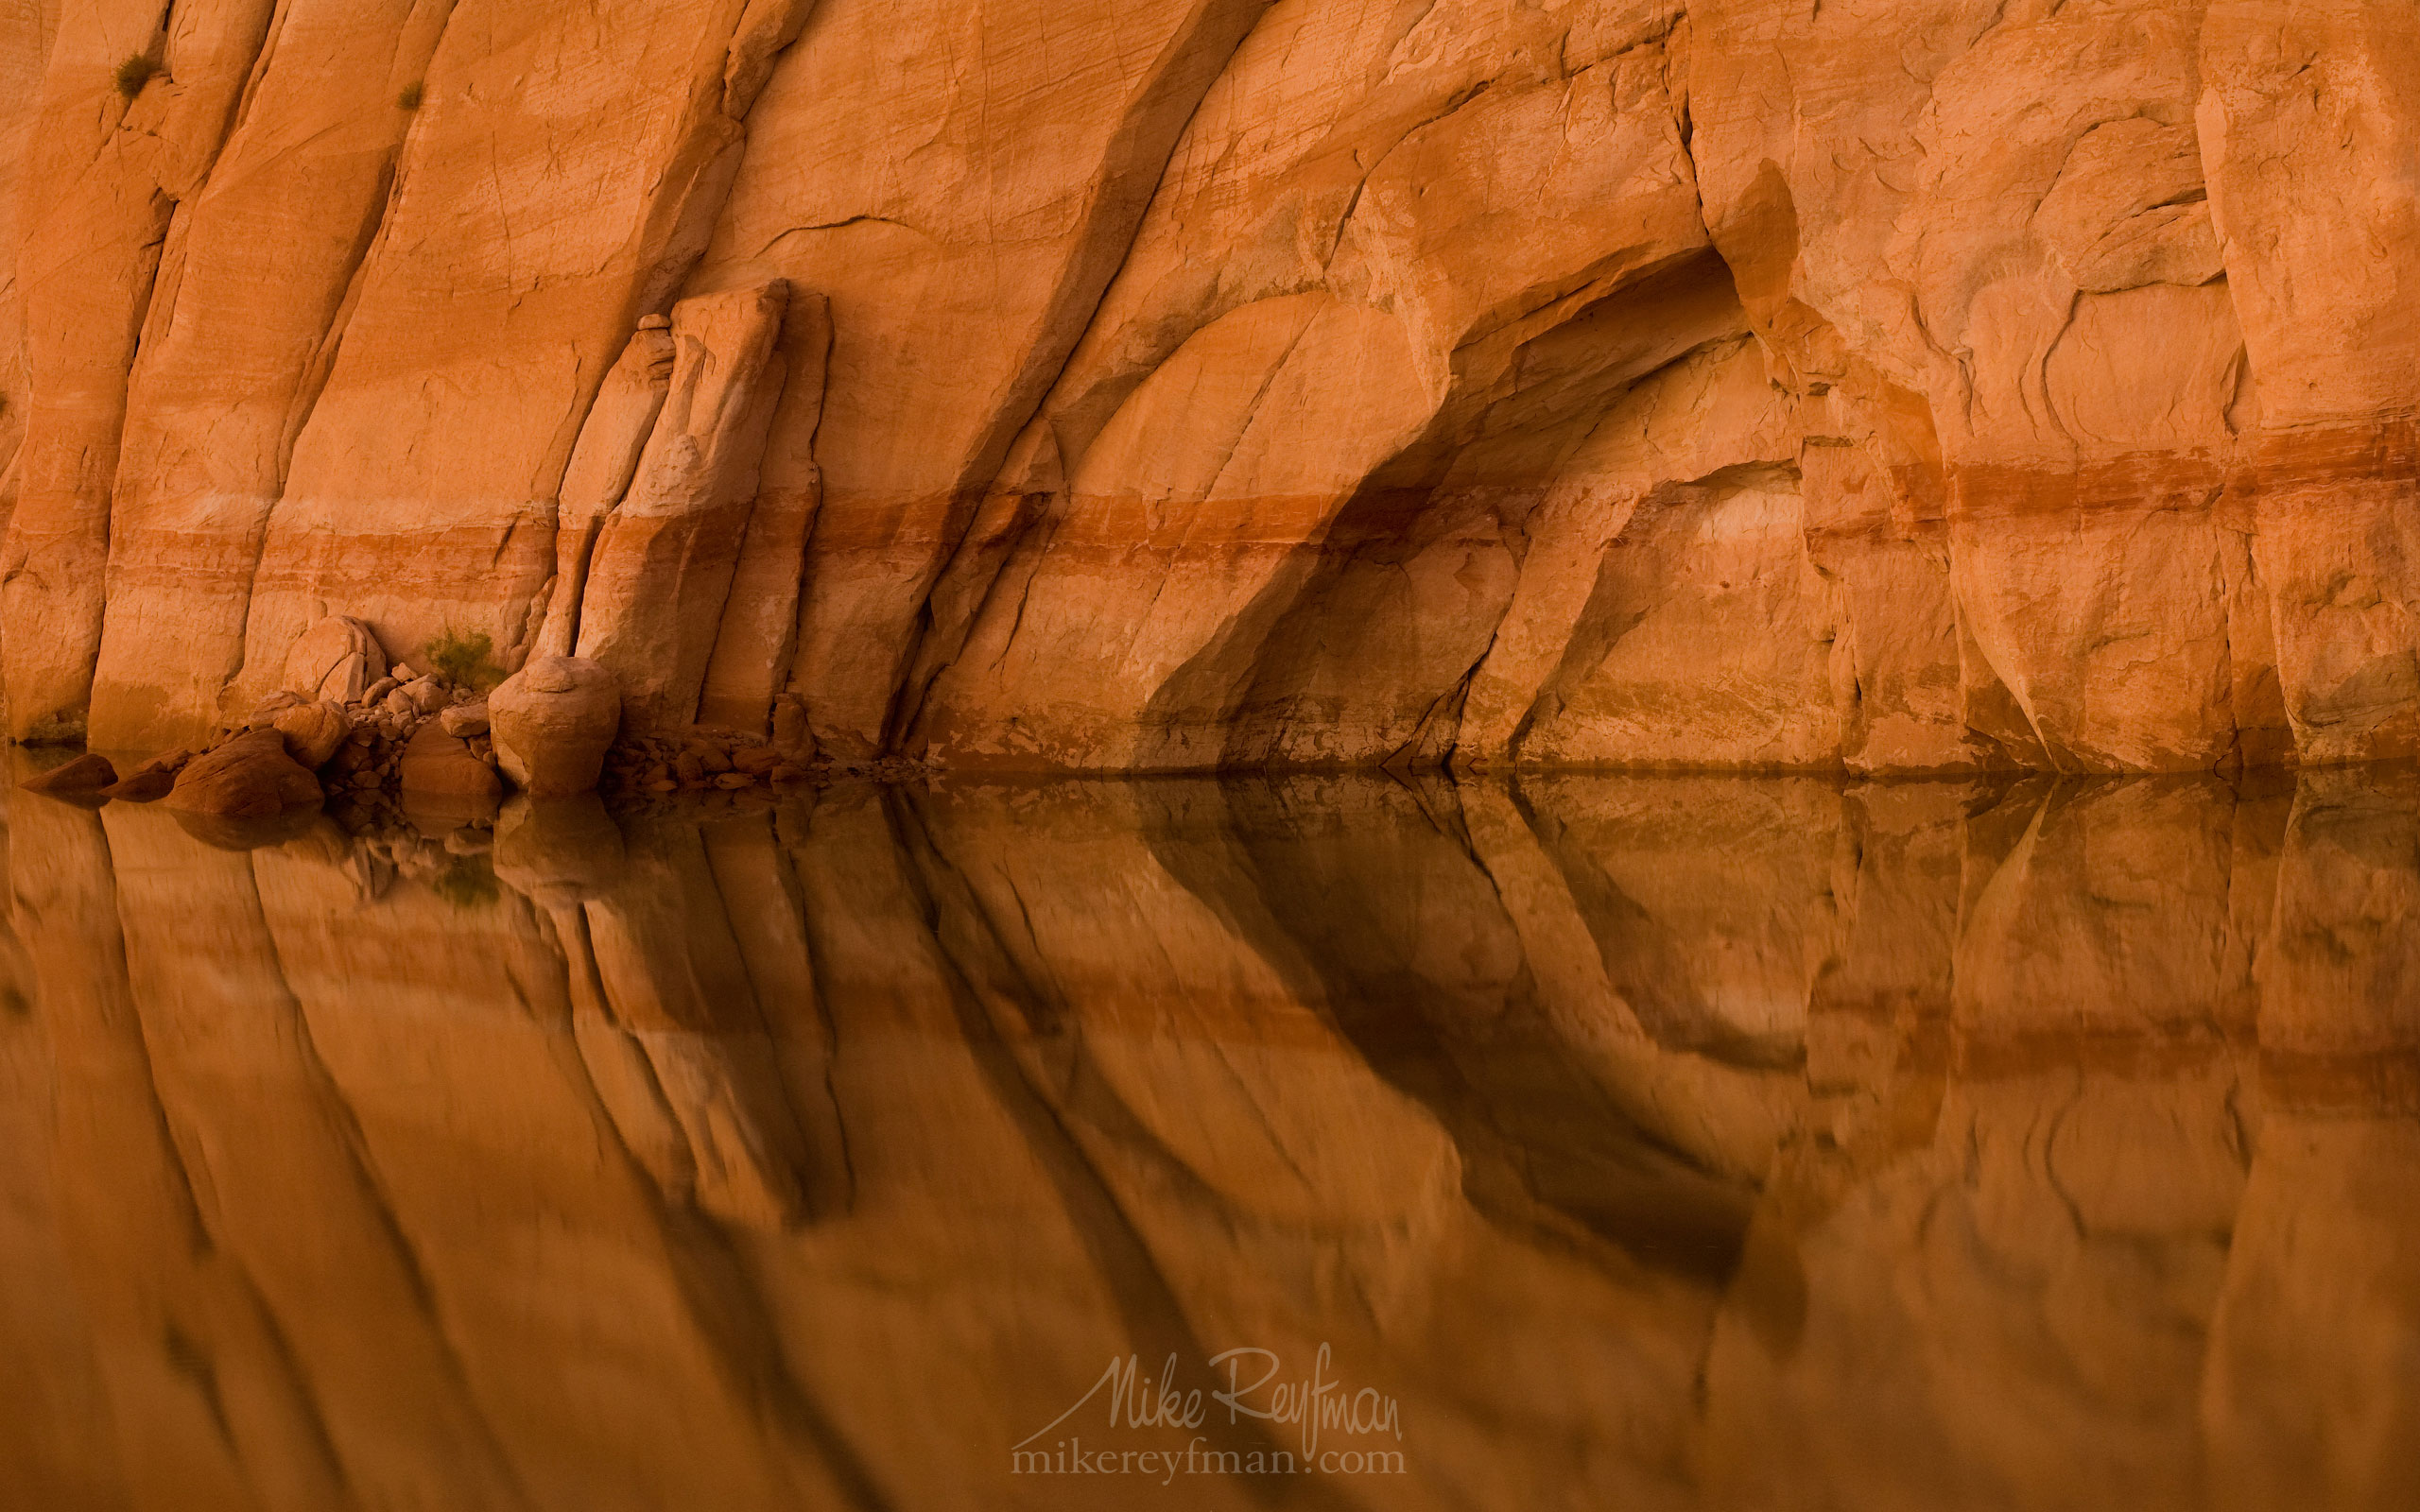 Lake Powell, Glen Canyon NRA, Utah/Arizona, USA. Aerial. 032-LP3_MR12247.jpg - Lake Powell, Glen Canyon NAR. Colorado and Sun Juan Rivers. Utah/Arizona, USA  - Mike Reyfman Photography